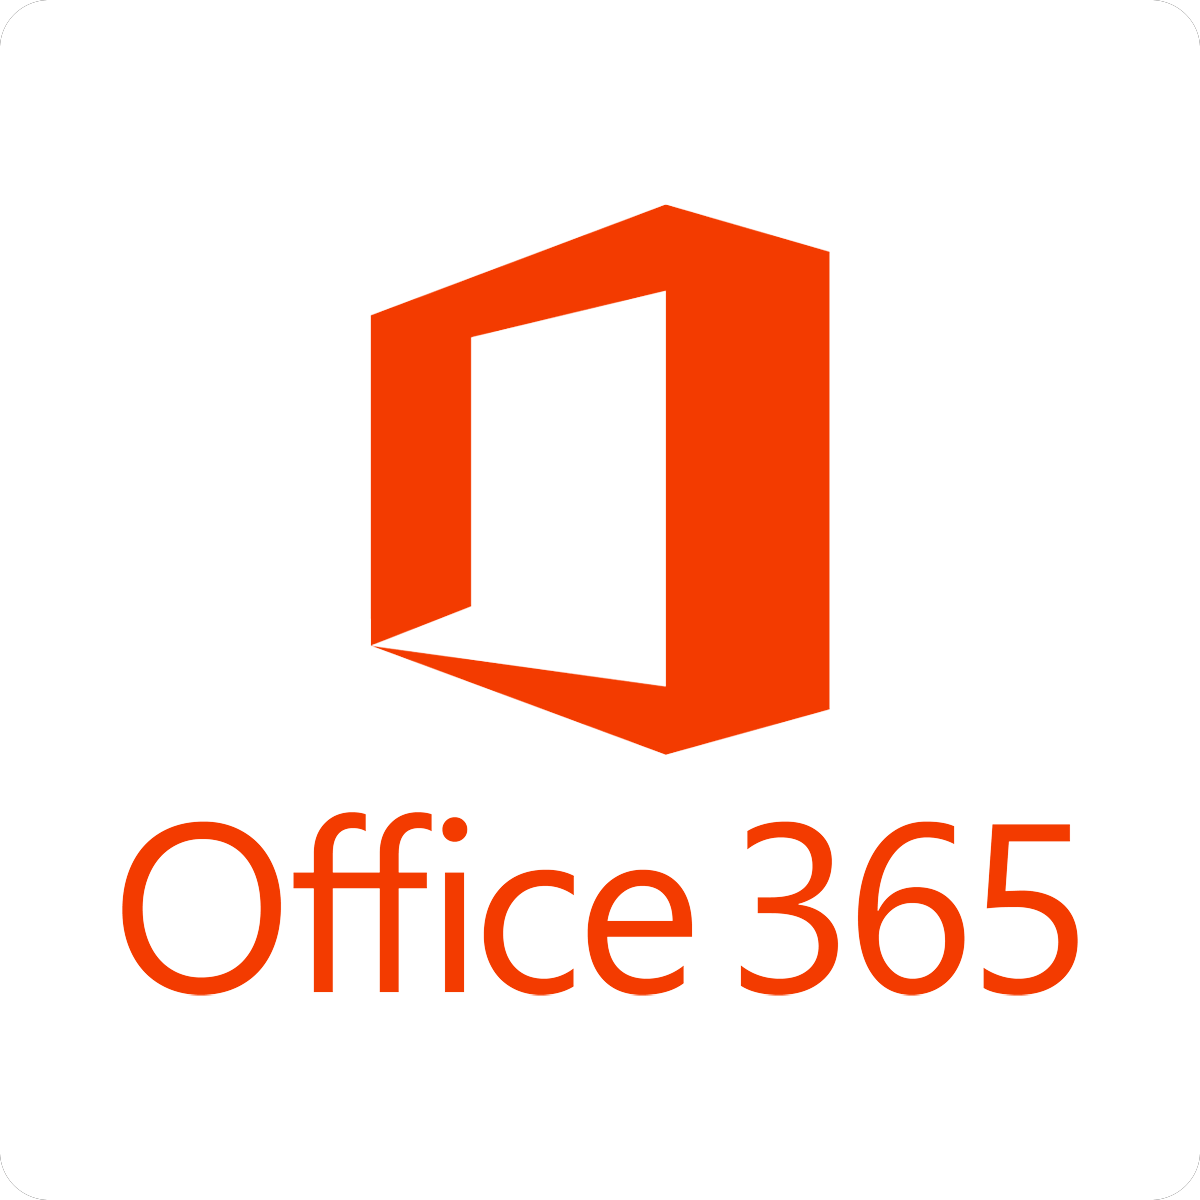 Microsoft Office 365 Plus Crack With Product Key 2020 {Latest}